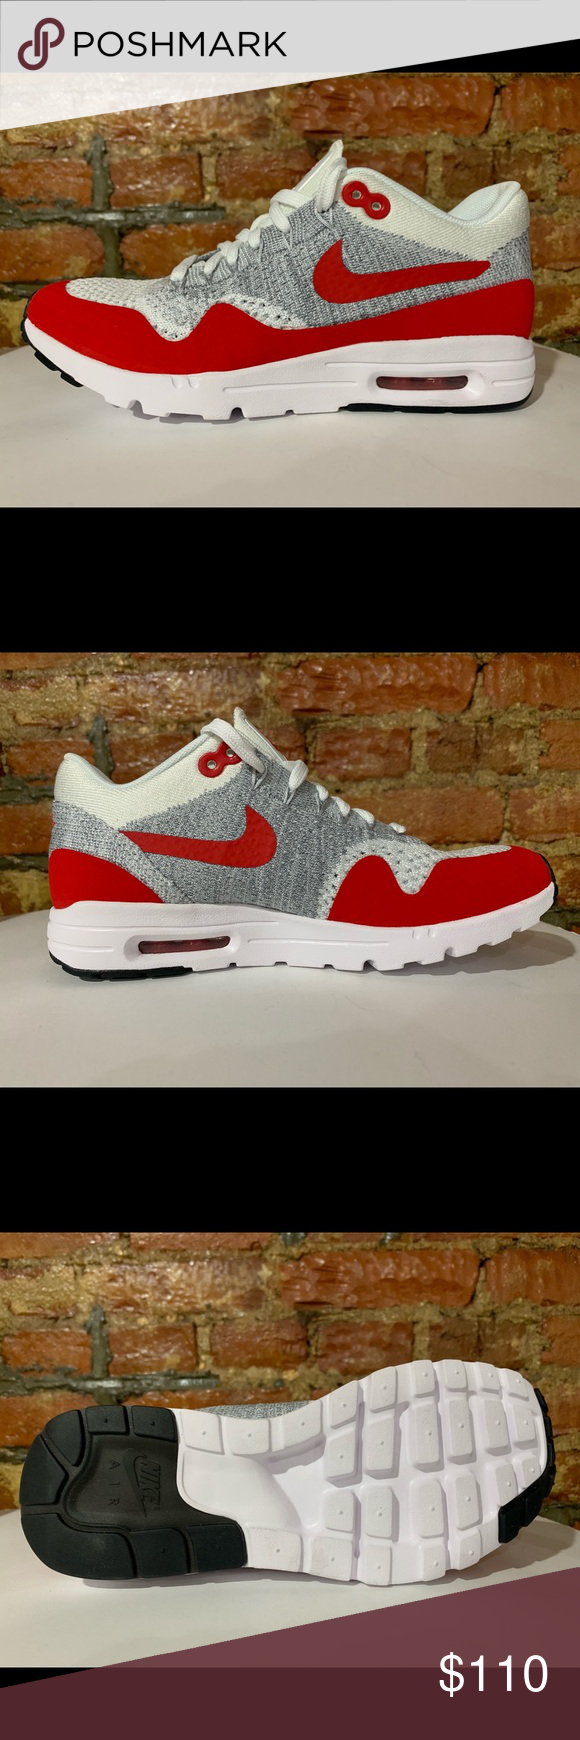 NEW Nike Air Max 1 Ultra OG Sneakers Size 7 Brand new pair